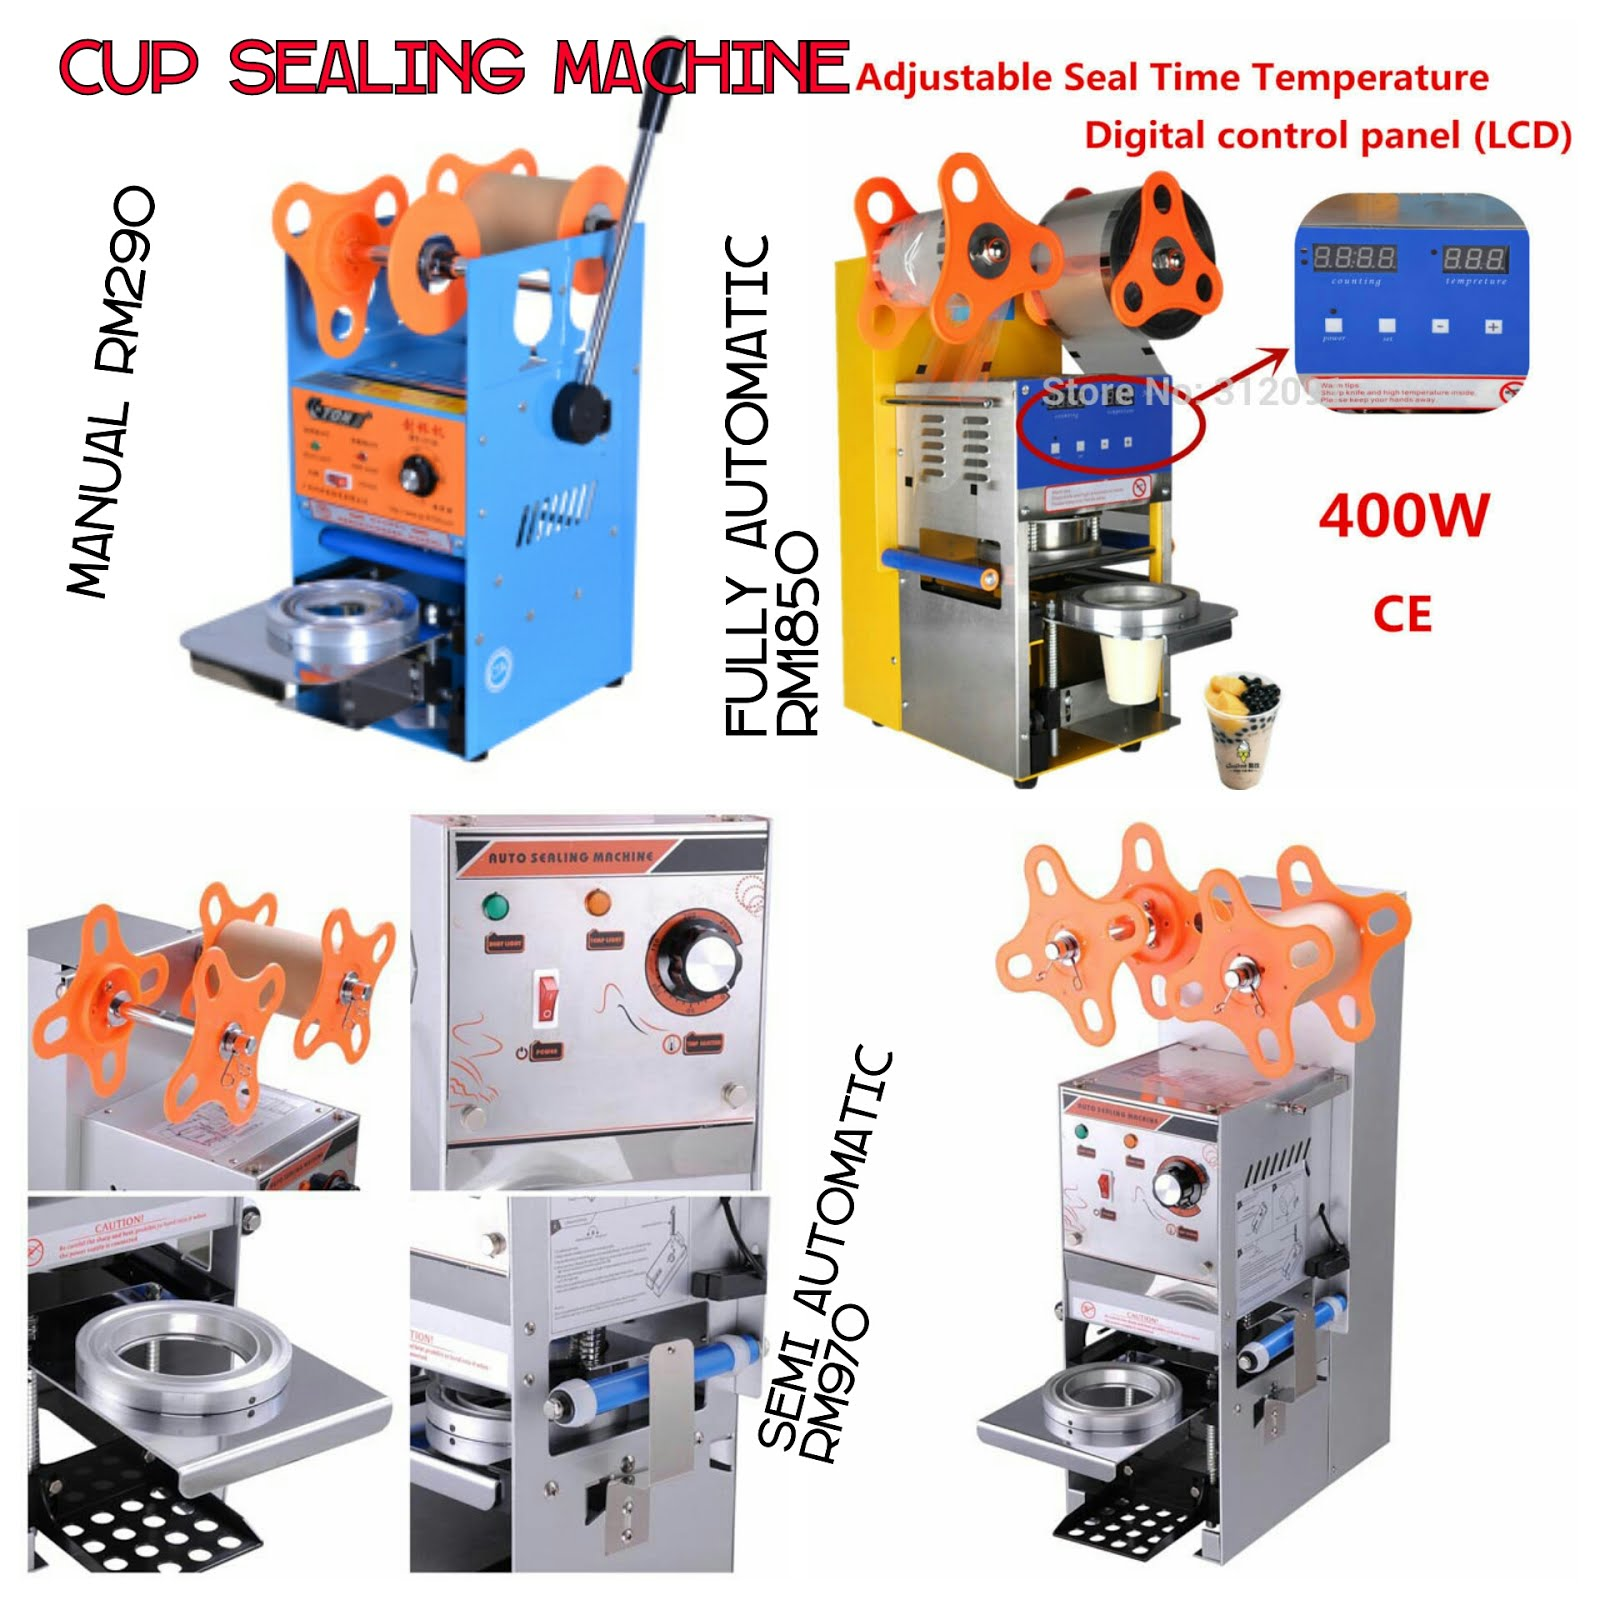 Kateloq Cup Sealer Machine